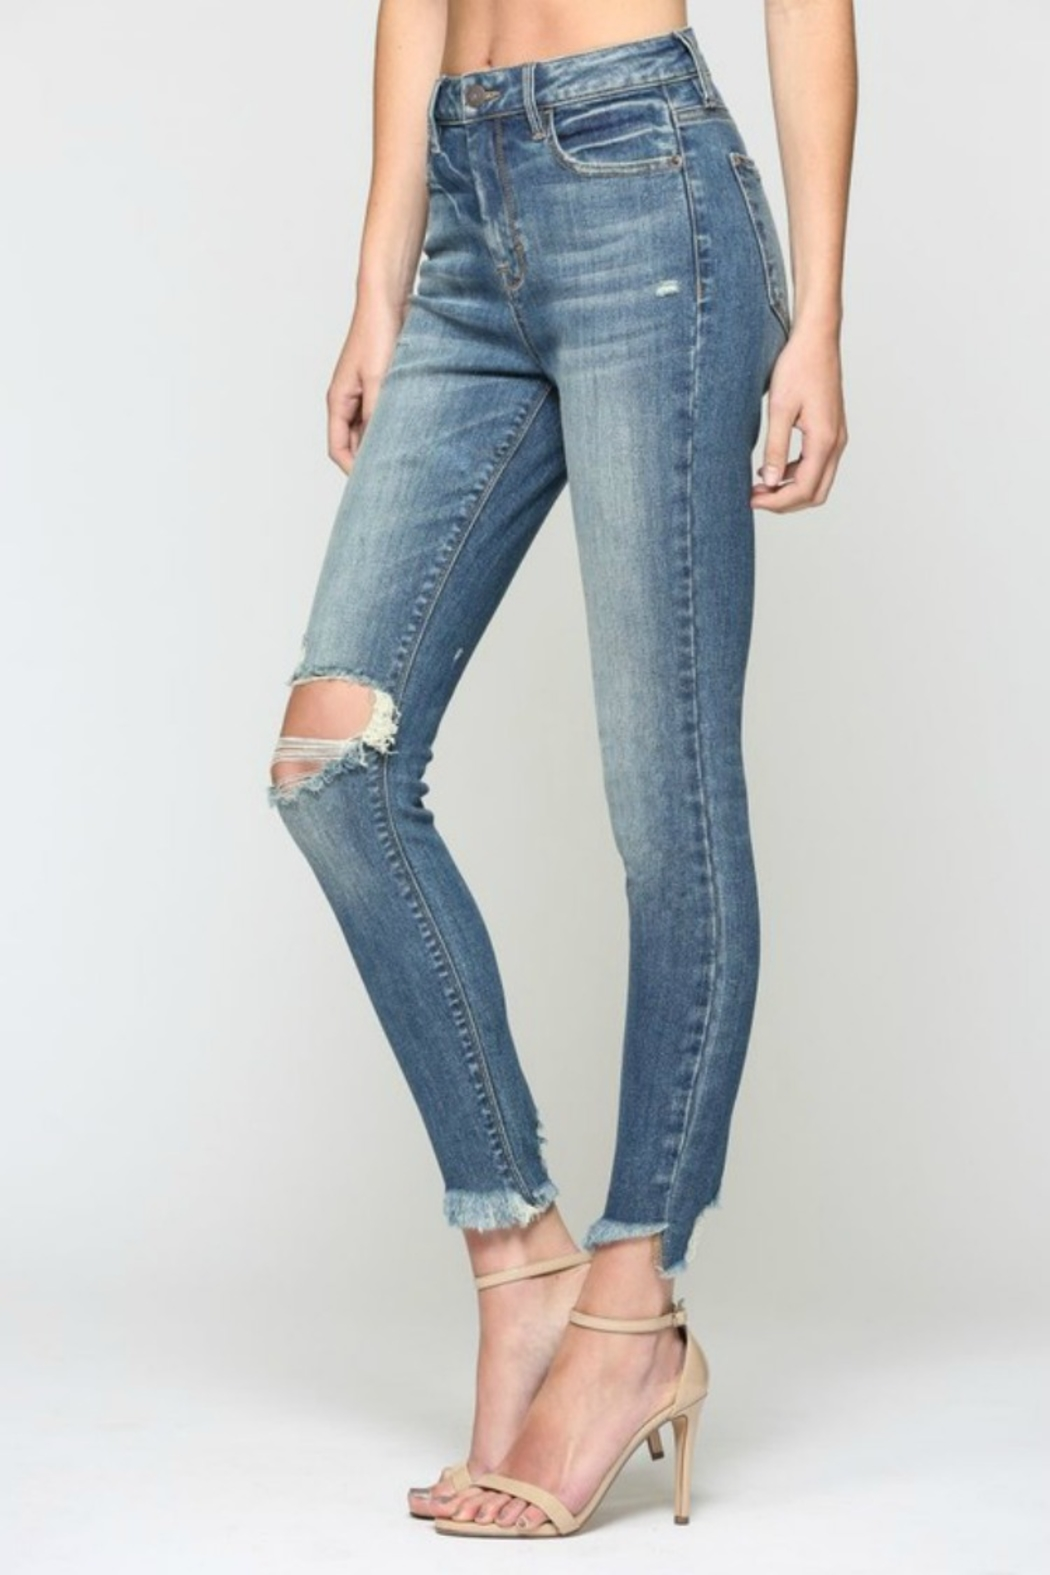 Hidden Jeans TAYOLOR HIGH RISE - Side Cropped Image